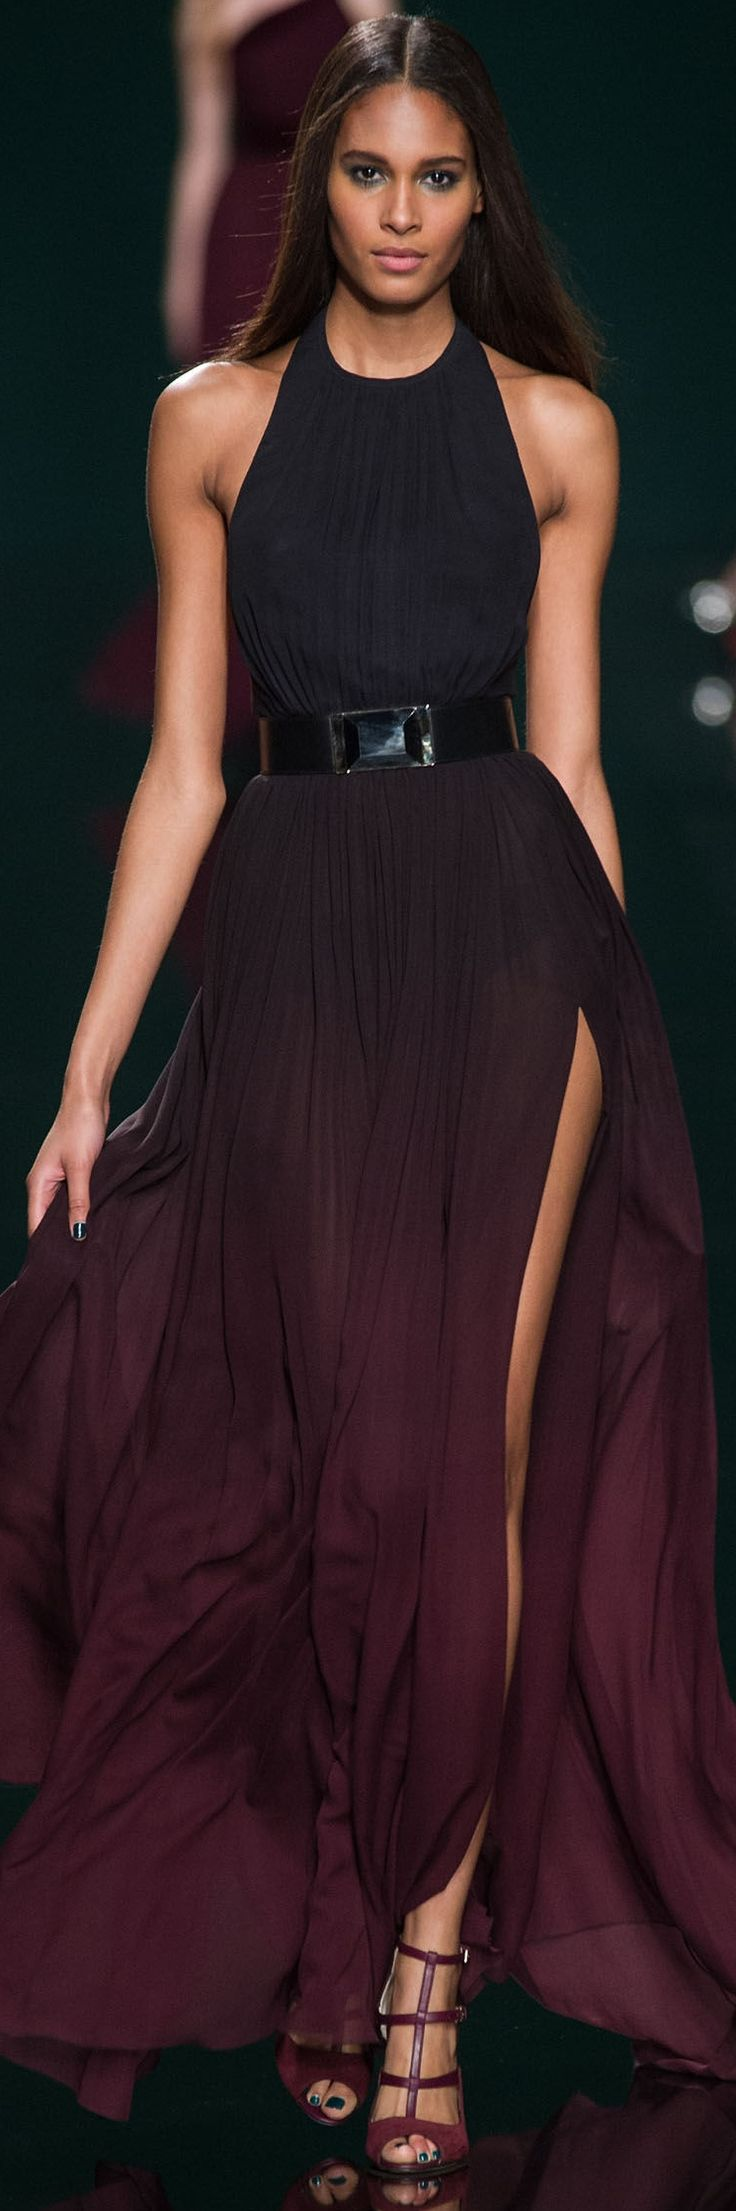 Elie Saab RTW F/W 2014-2015 - Dress - Haute Couture - Vestido- Alta Costura